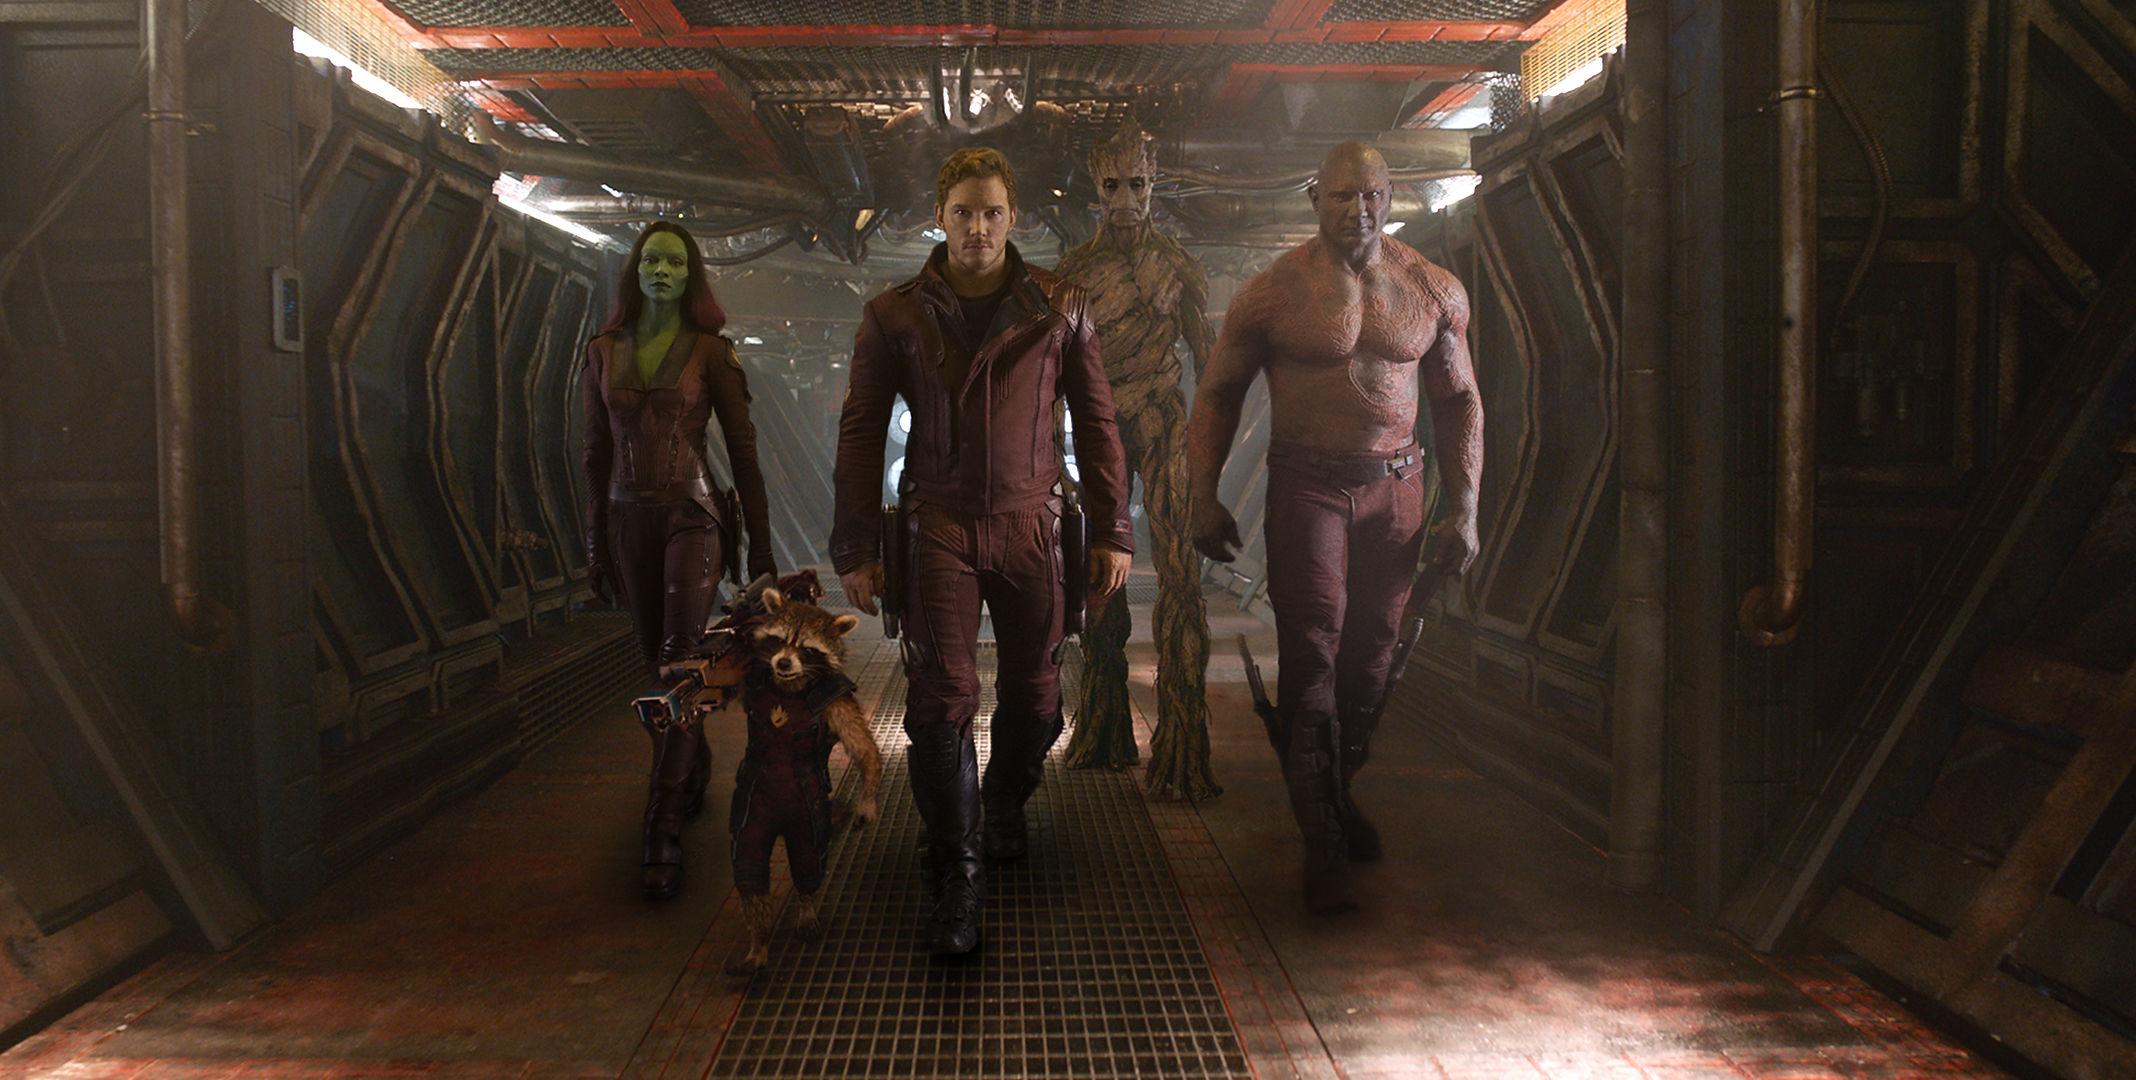 guardians of the galaxy director confirms trilogy plans 4